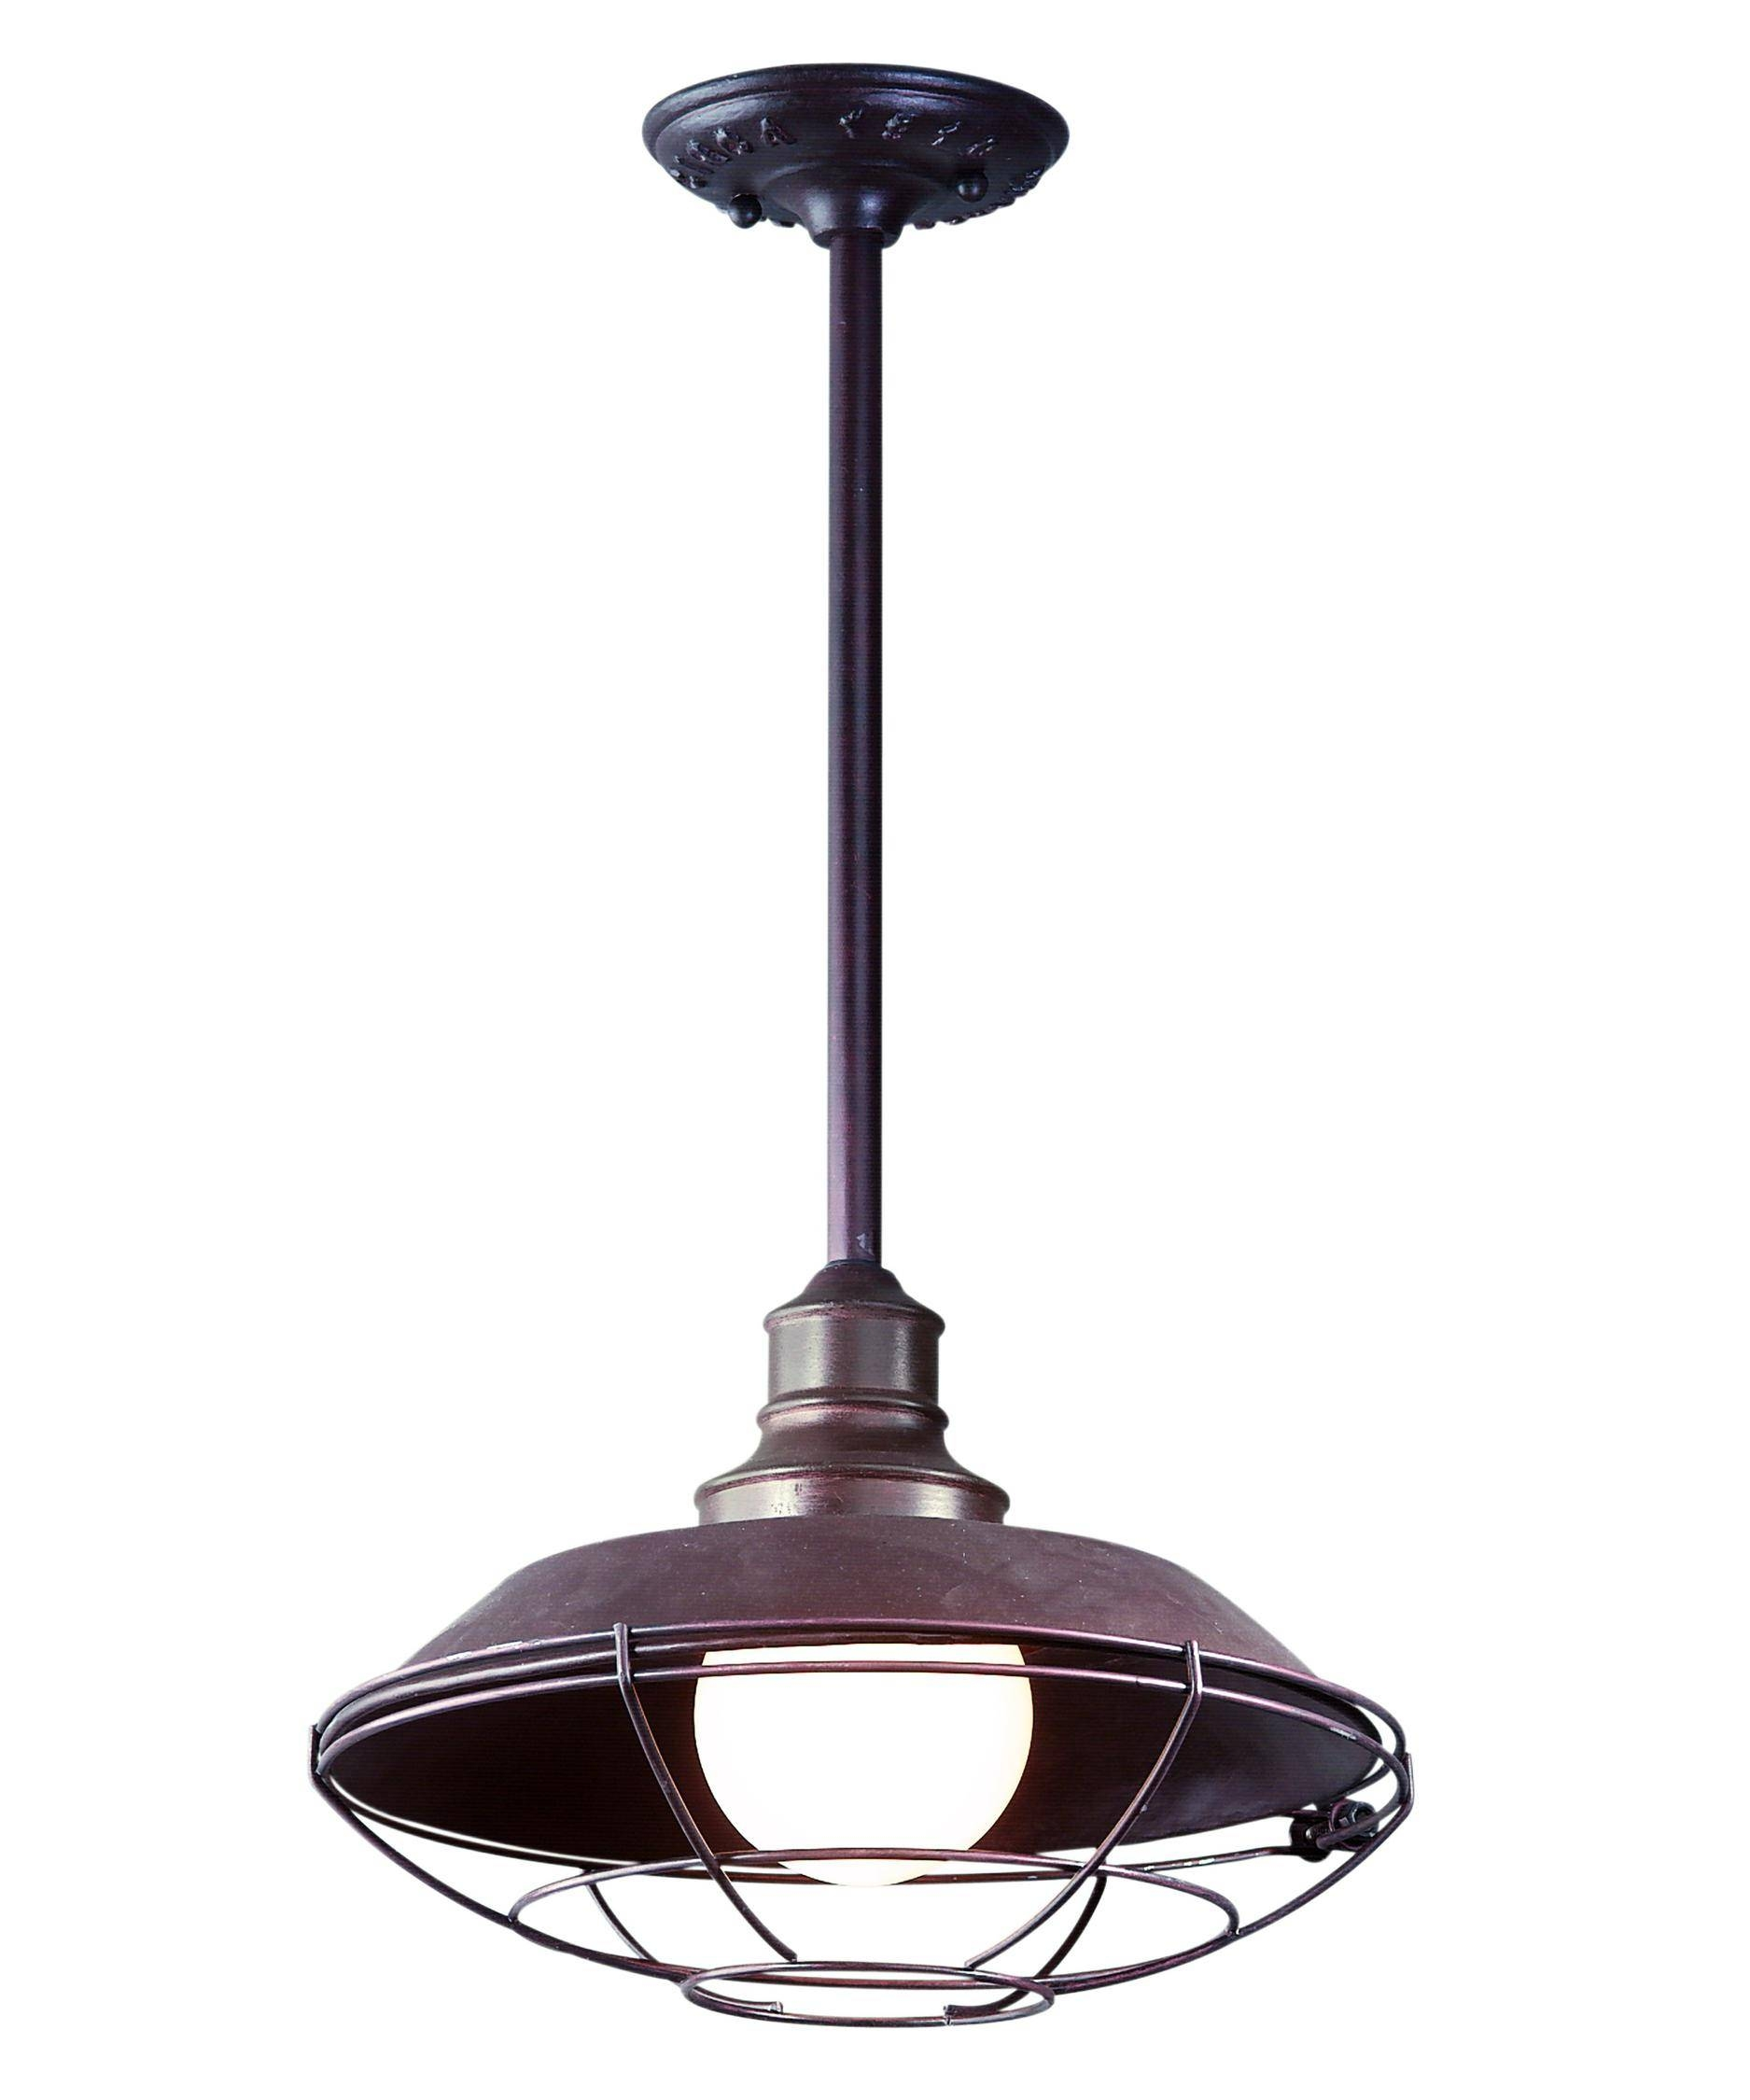 Troy Lighting F9273 Circa 1910 12 Inch Wide 1 Light Outdoor with Outdoor Pendant Lighting (Image 15 of 15)